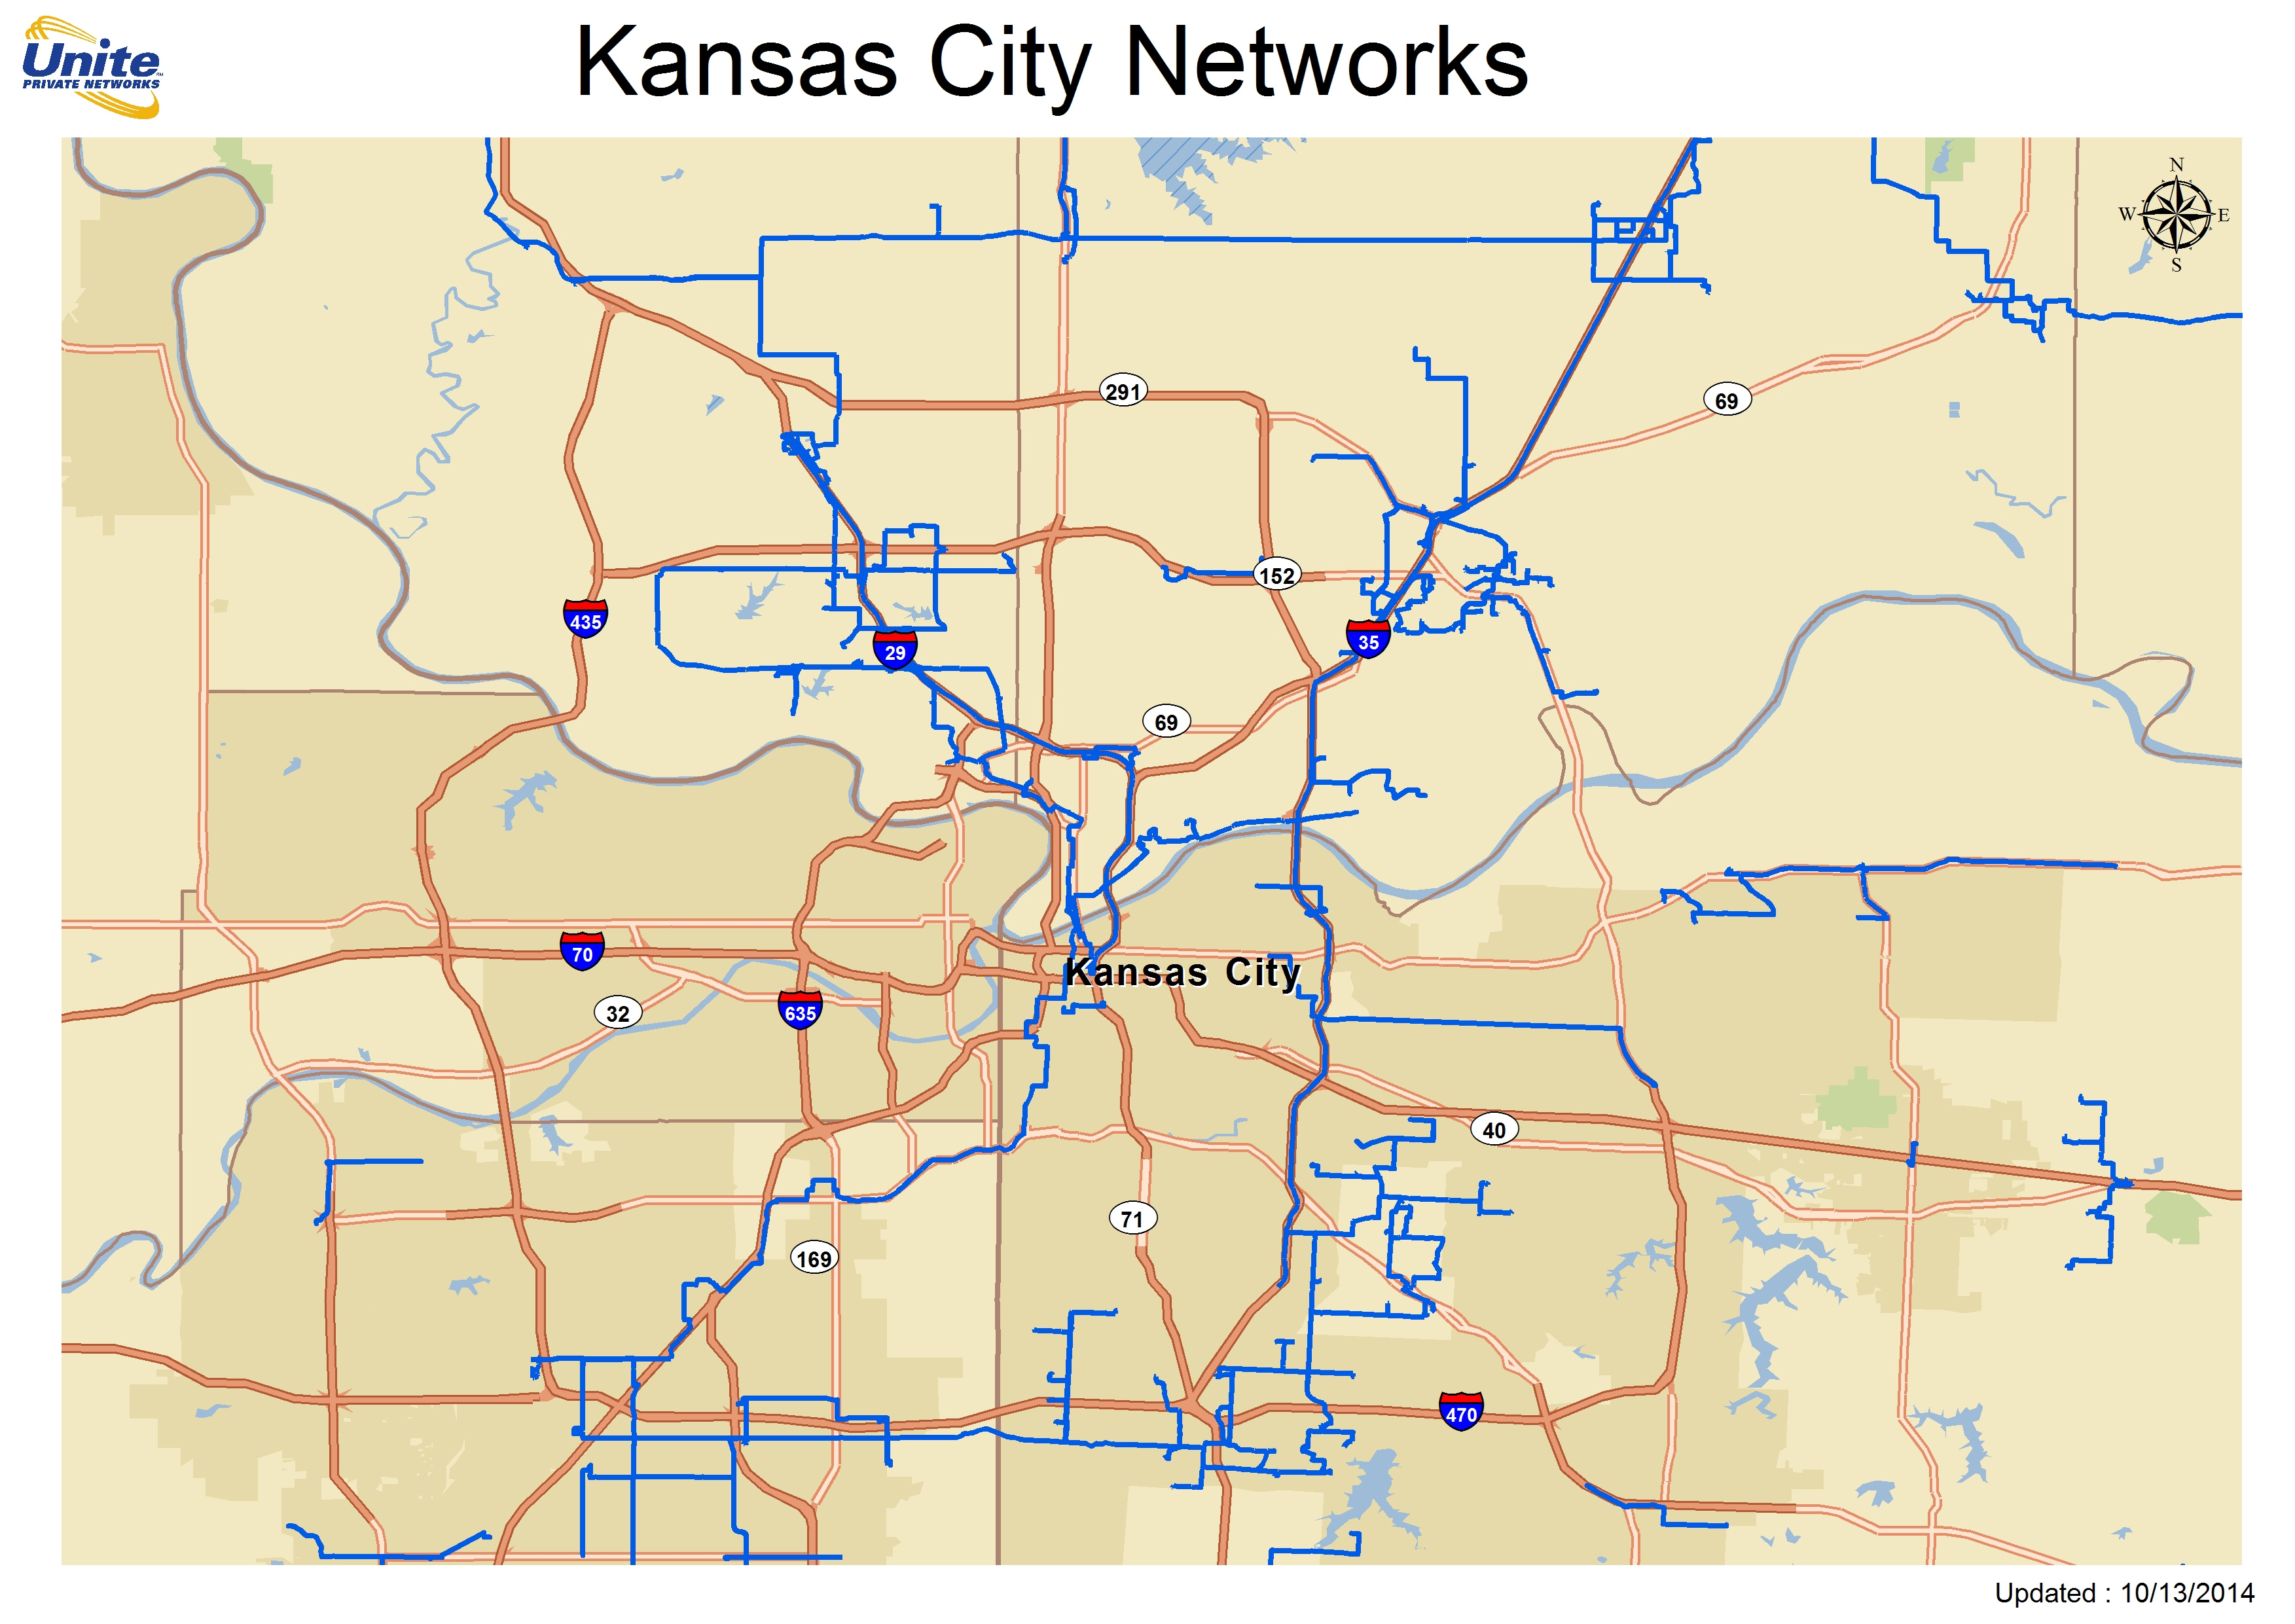 metro fiber maps great plains  telecom ramblings - ks manhattan both